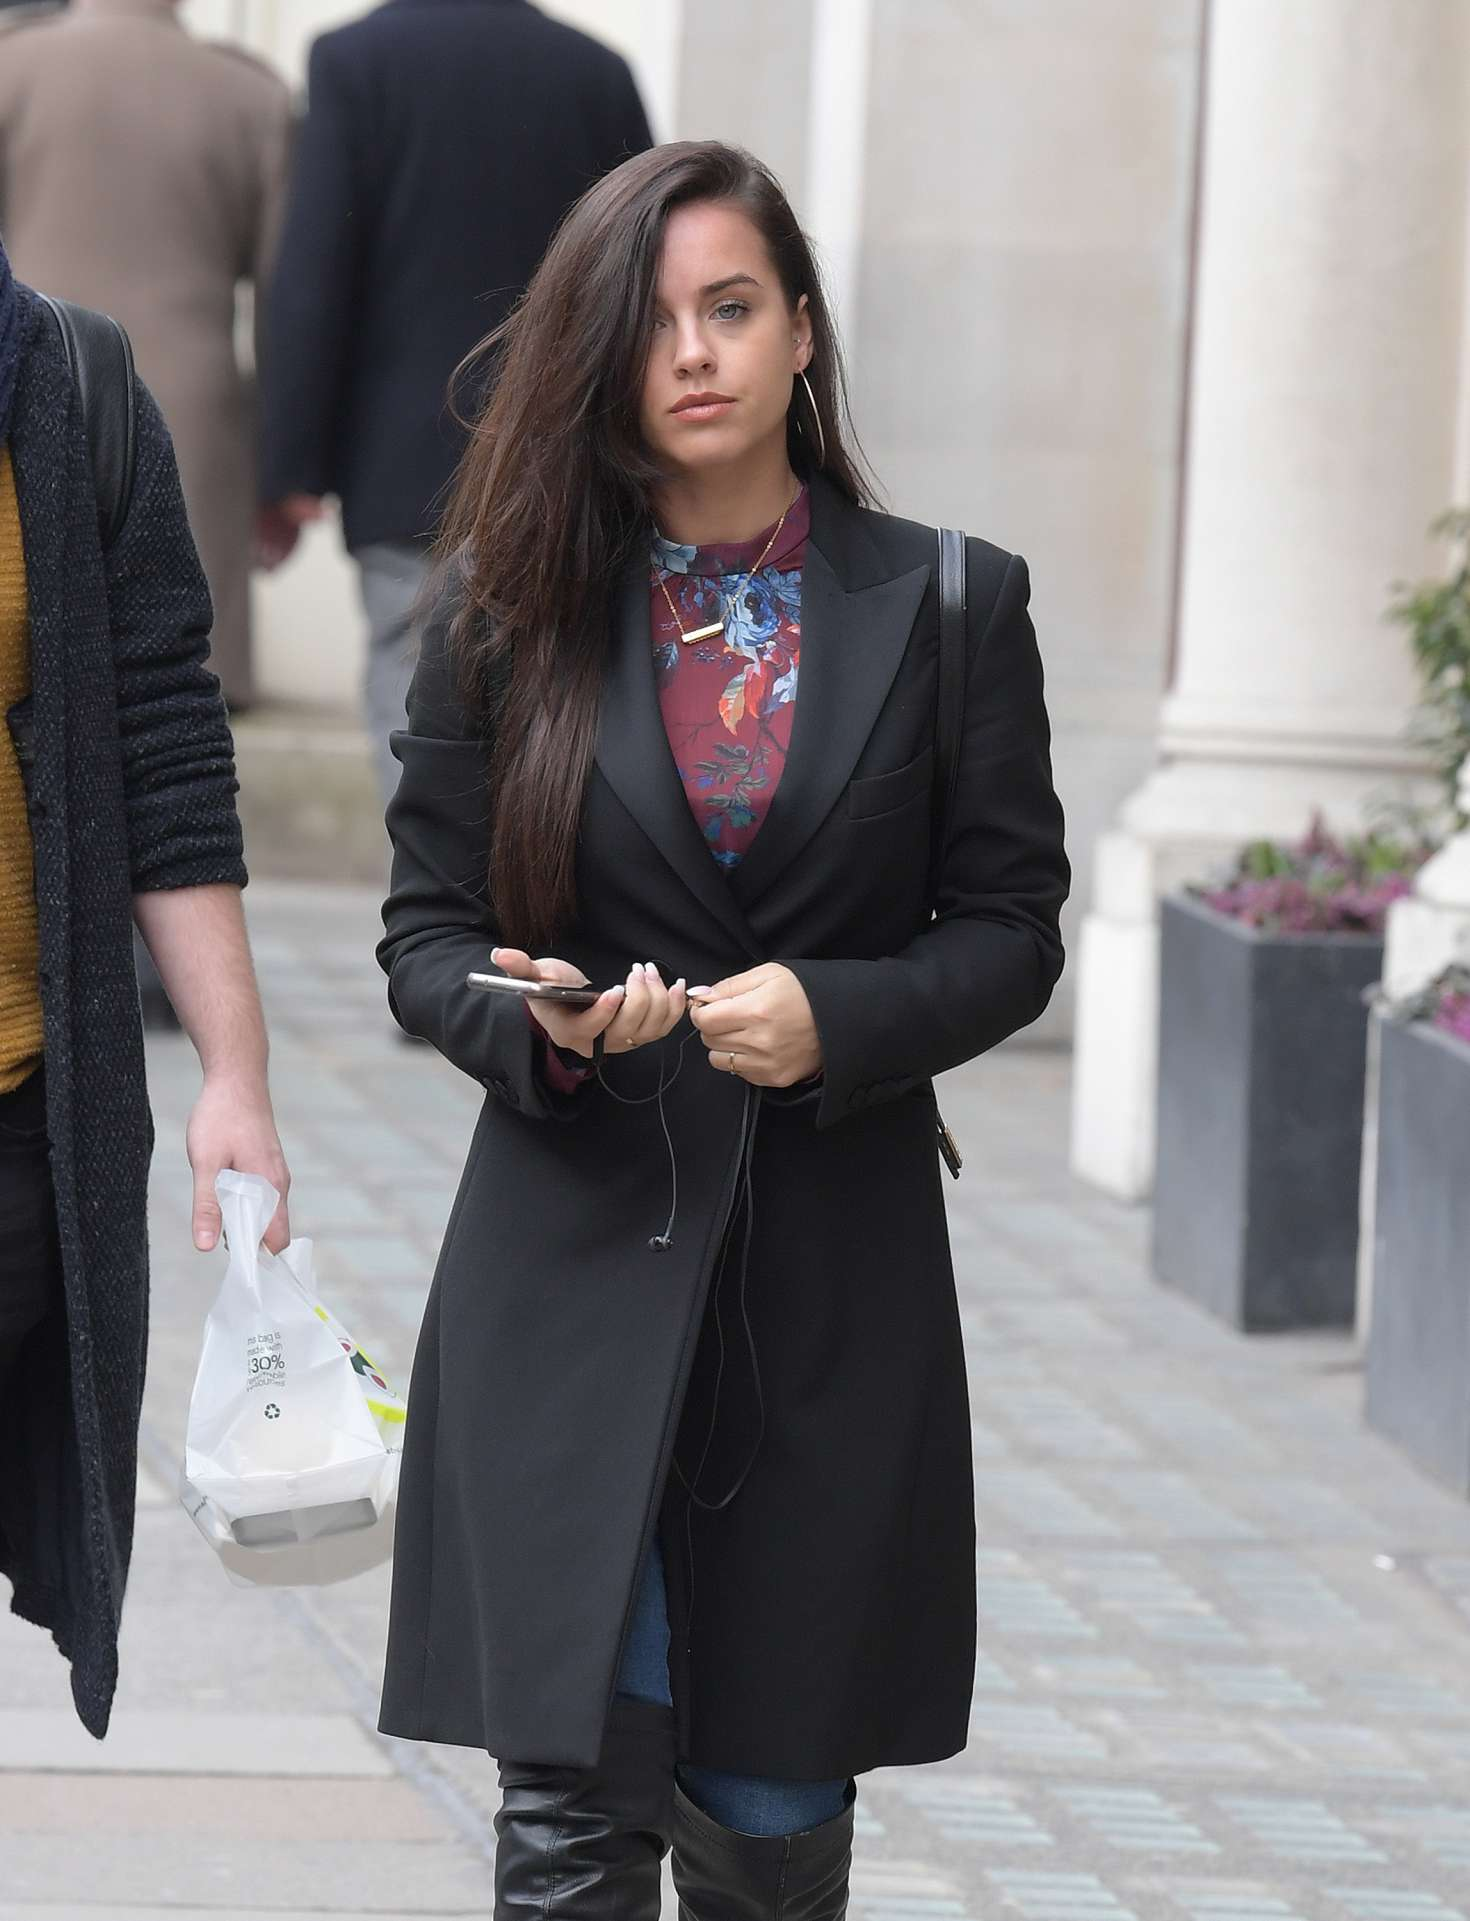 Georgia May Foote - Attending a business lunch meeting in London